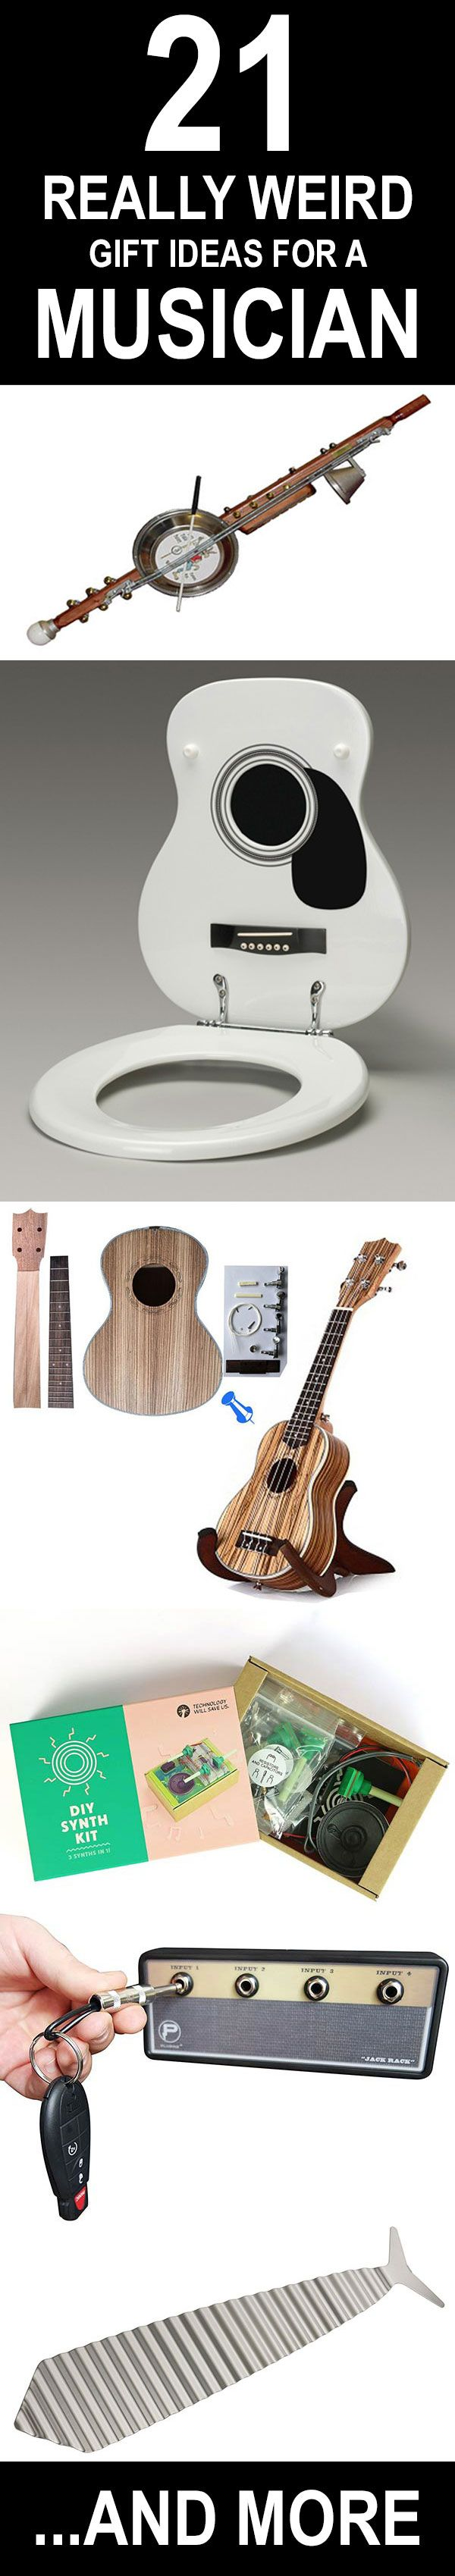 21 really weird gift ideas for a musician. Guitar roilet seats, stumpf sticks, build your own DIY synth, and much more.